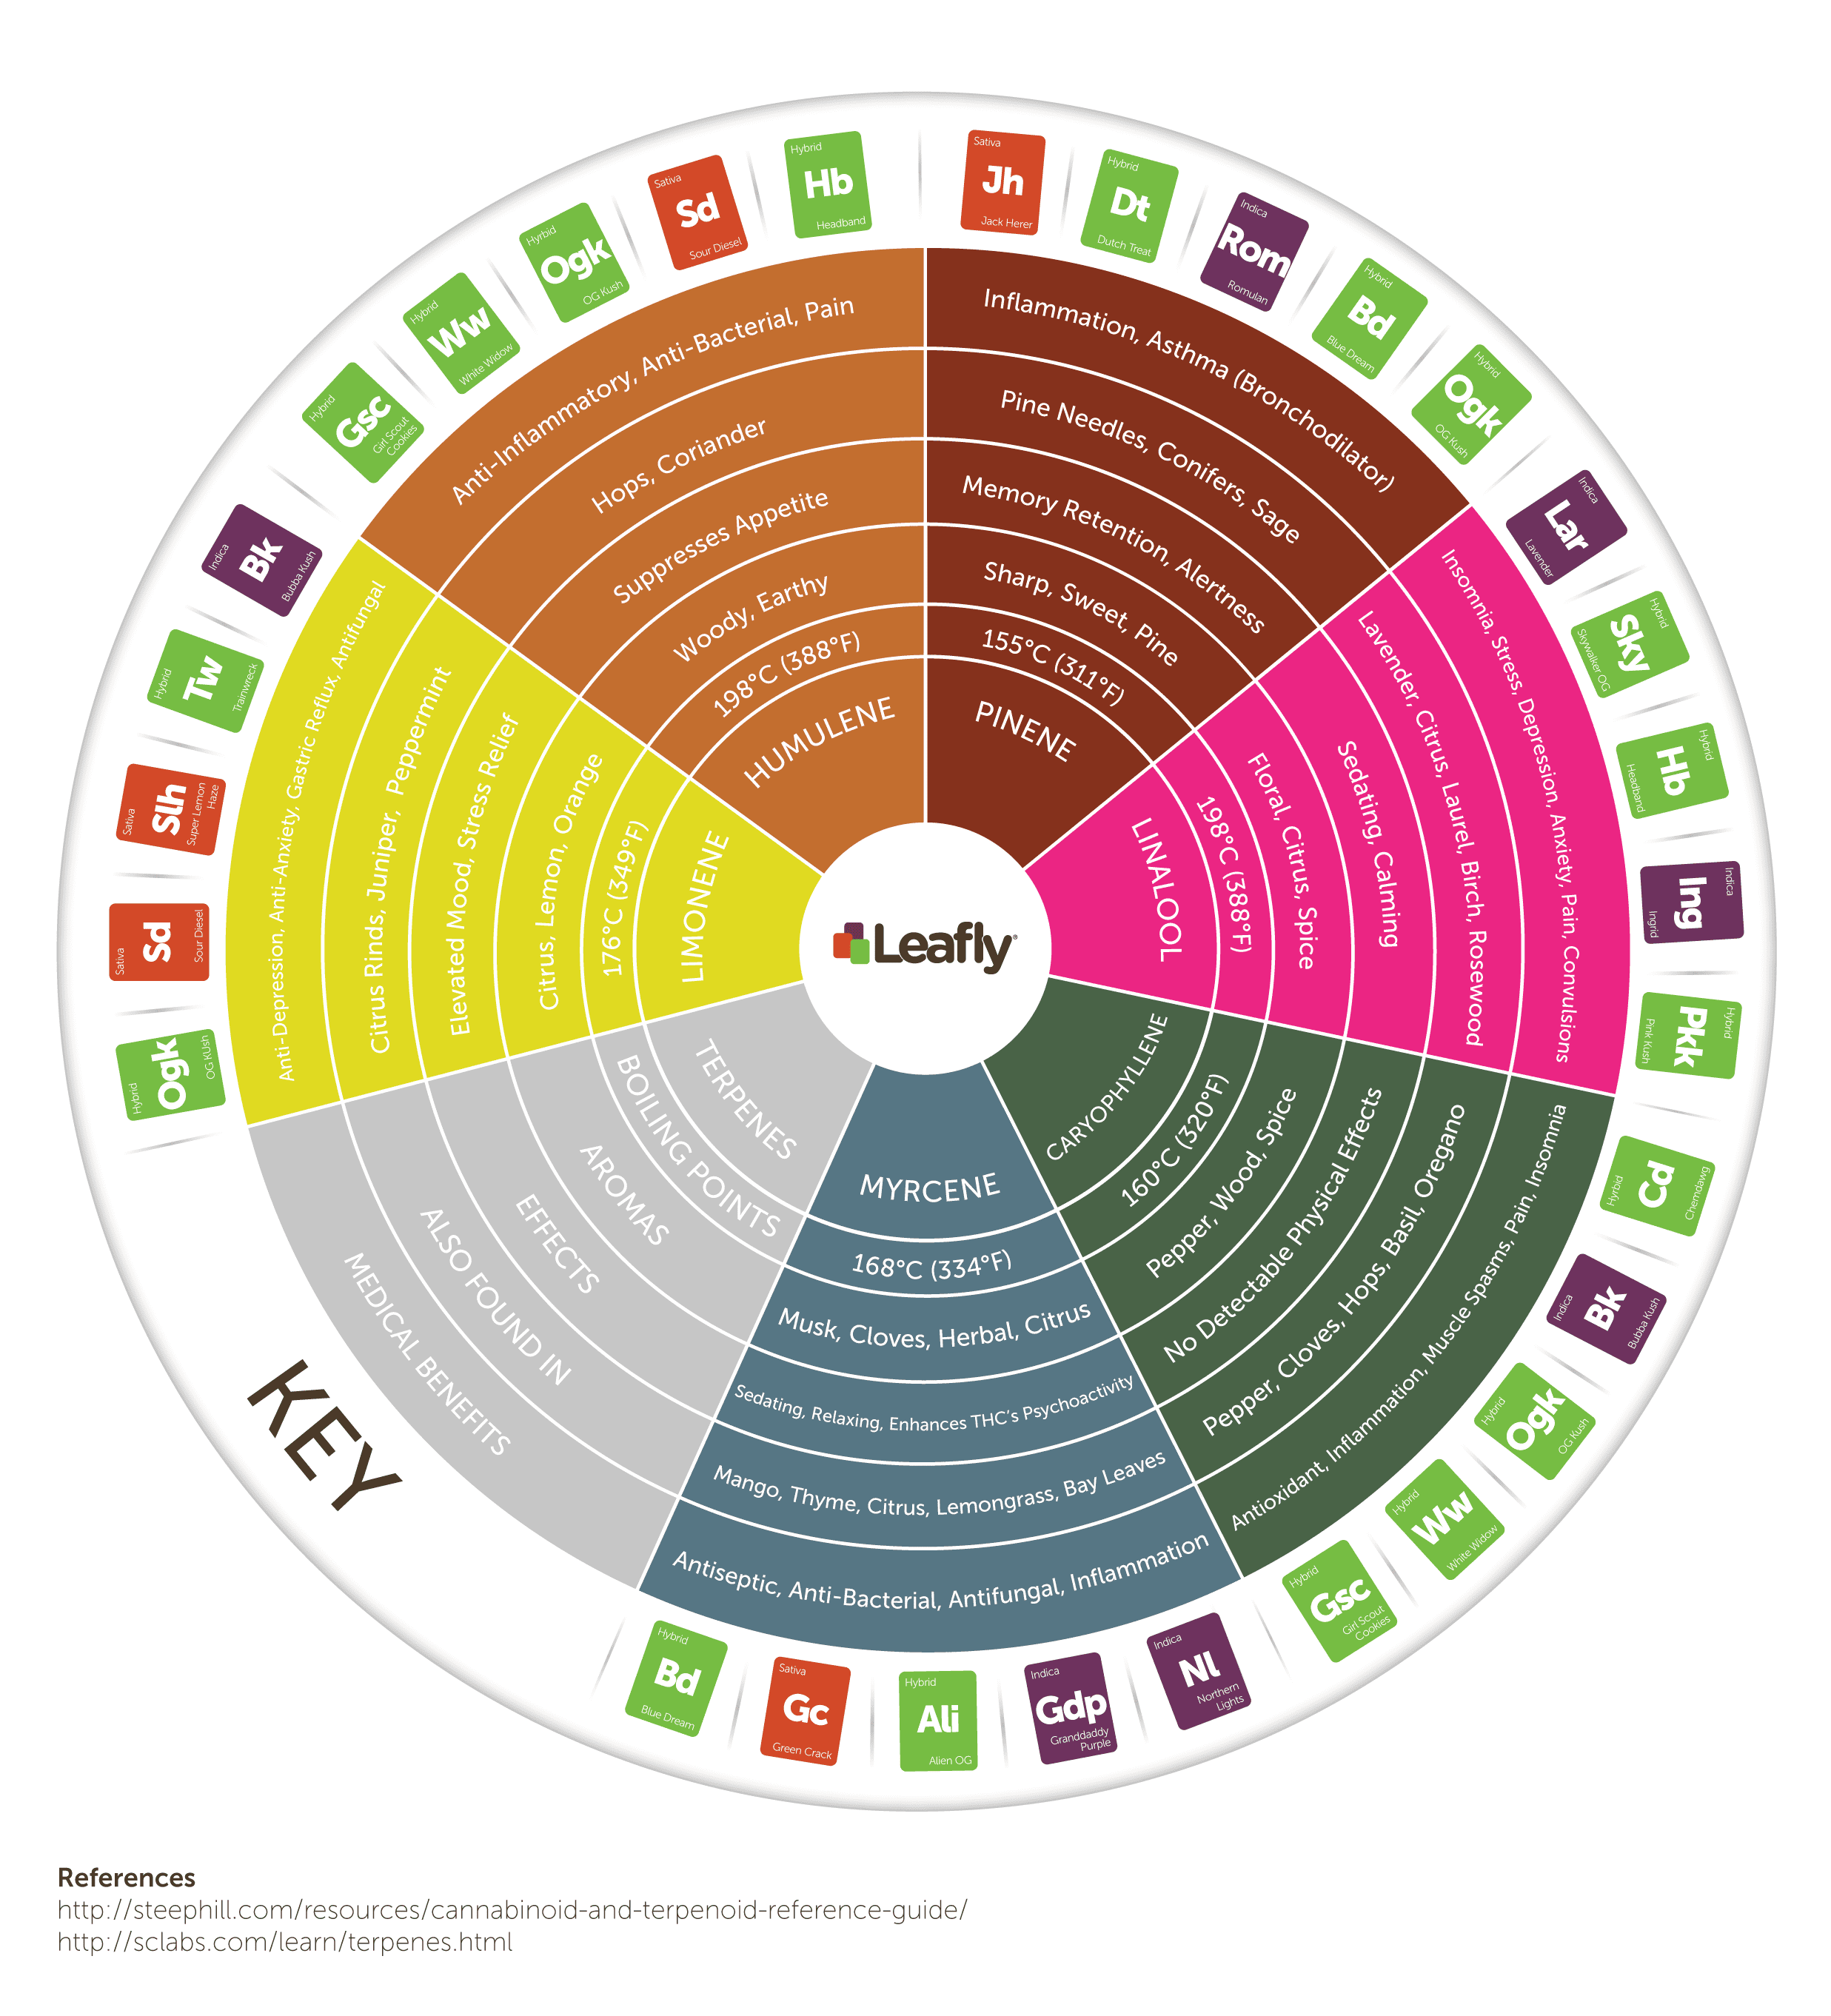 jXSS0pS1Sw2p2eq176GL_Leafly-Cannabis-Terpene-Wheel-Infographic